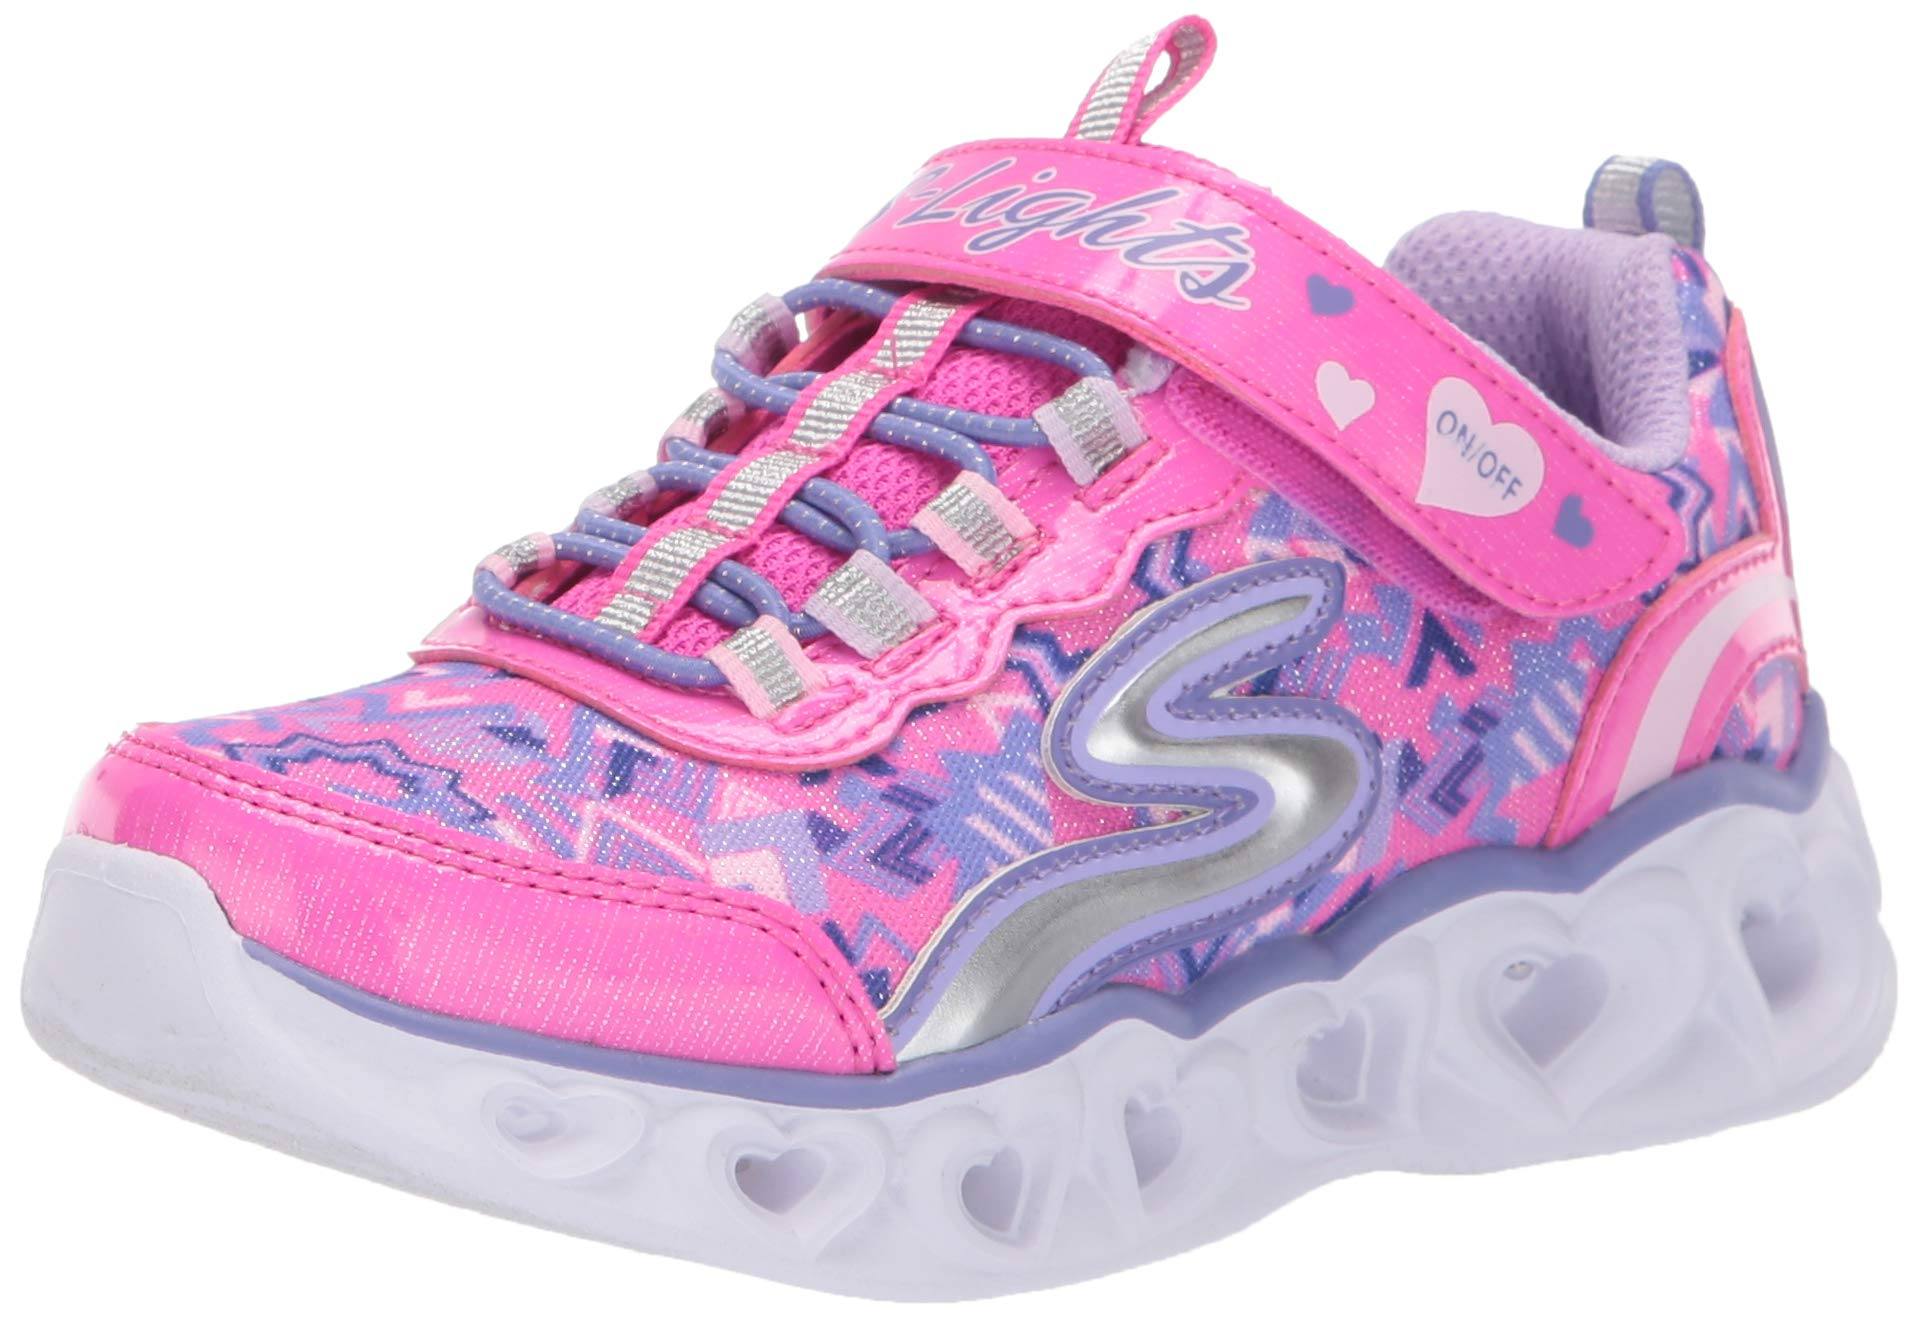 Skechers Kids Girls' Heart Lights Sneaker, neon Pink/Multi, 10 Medium US Toddler by Skechers